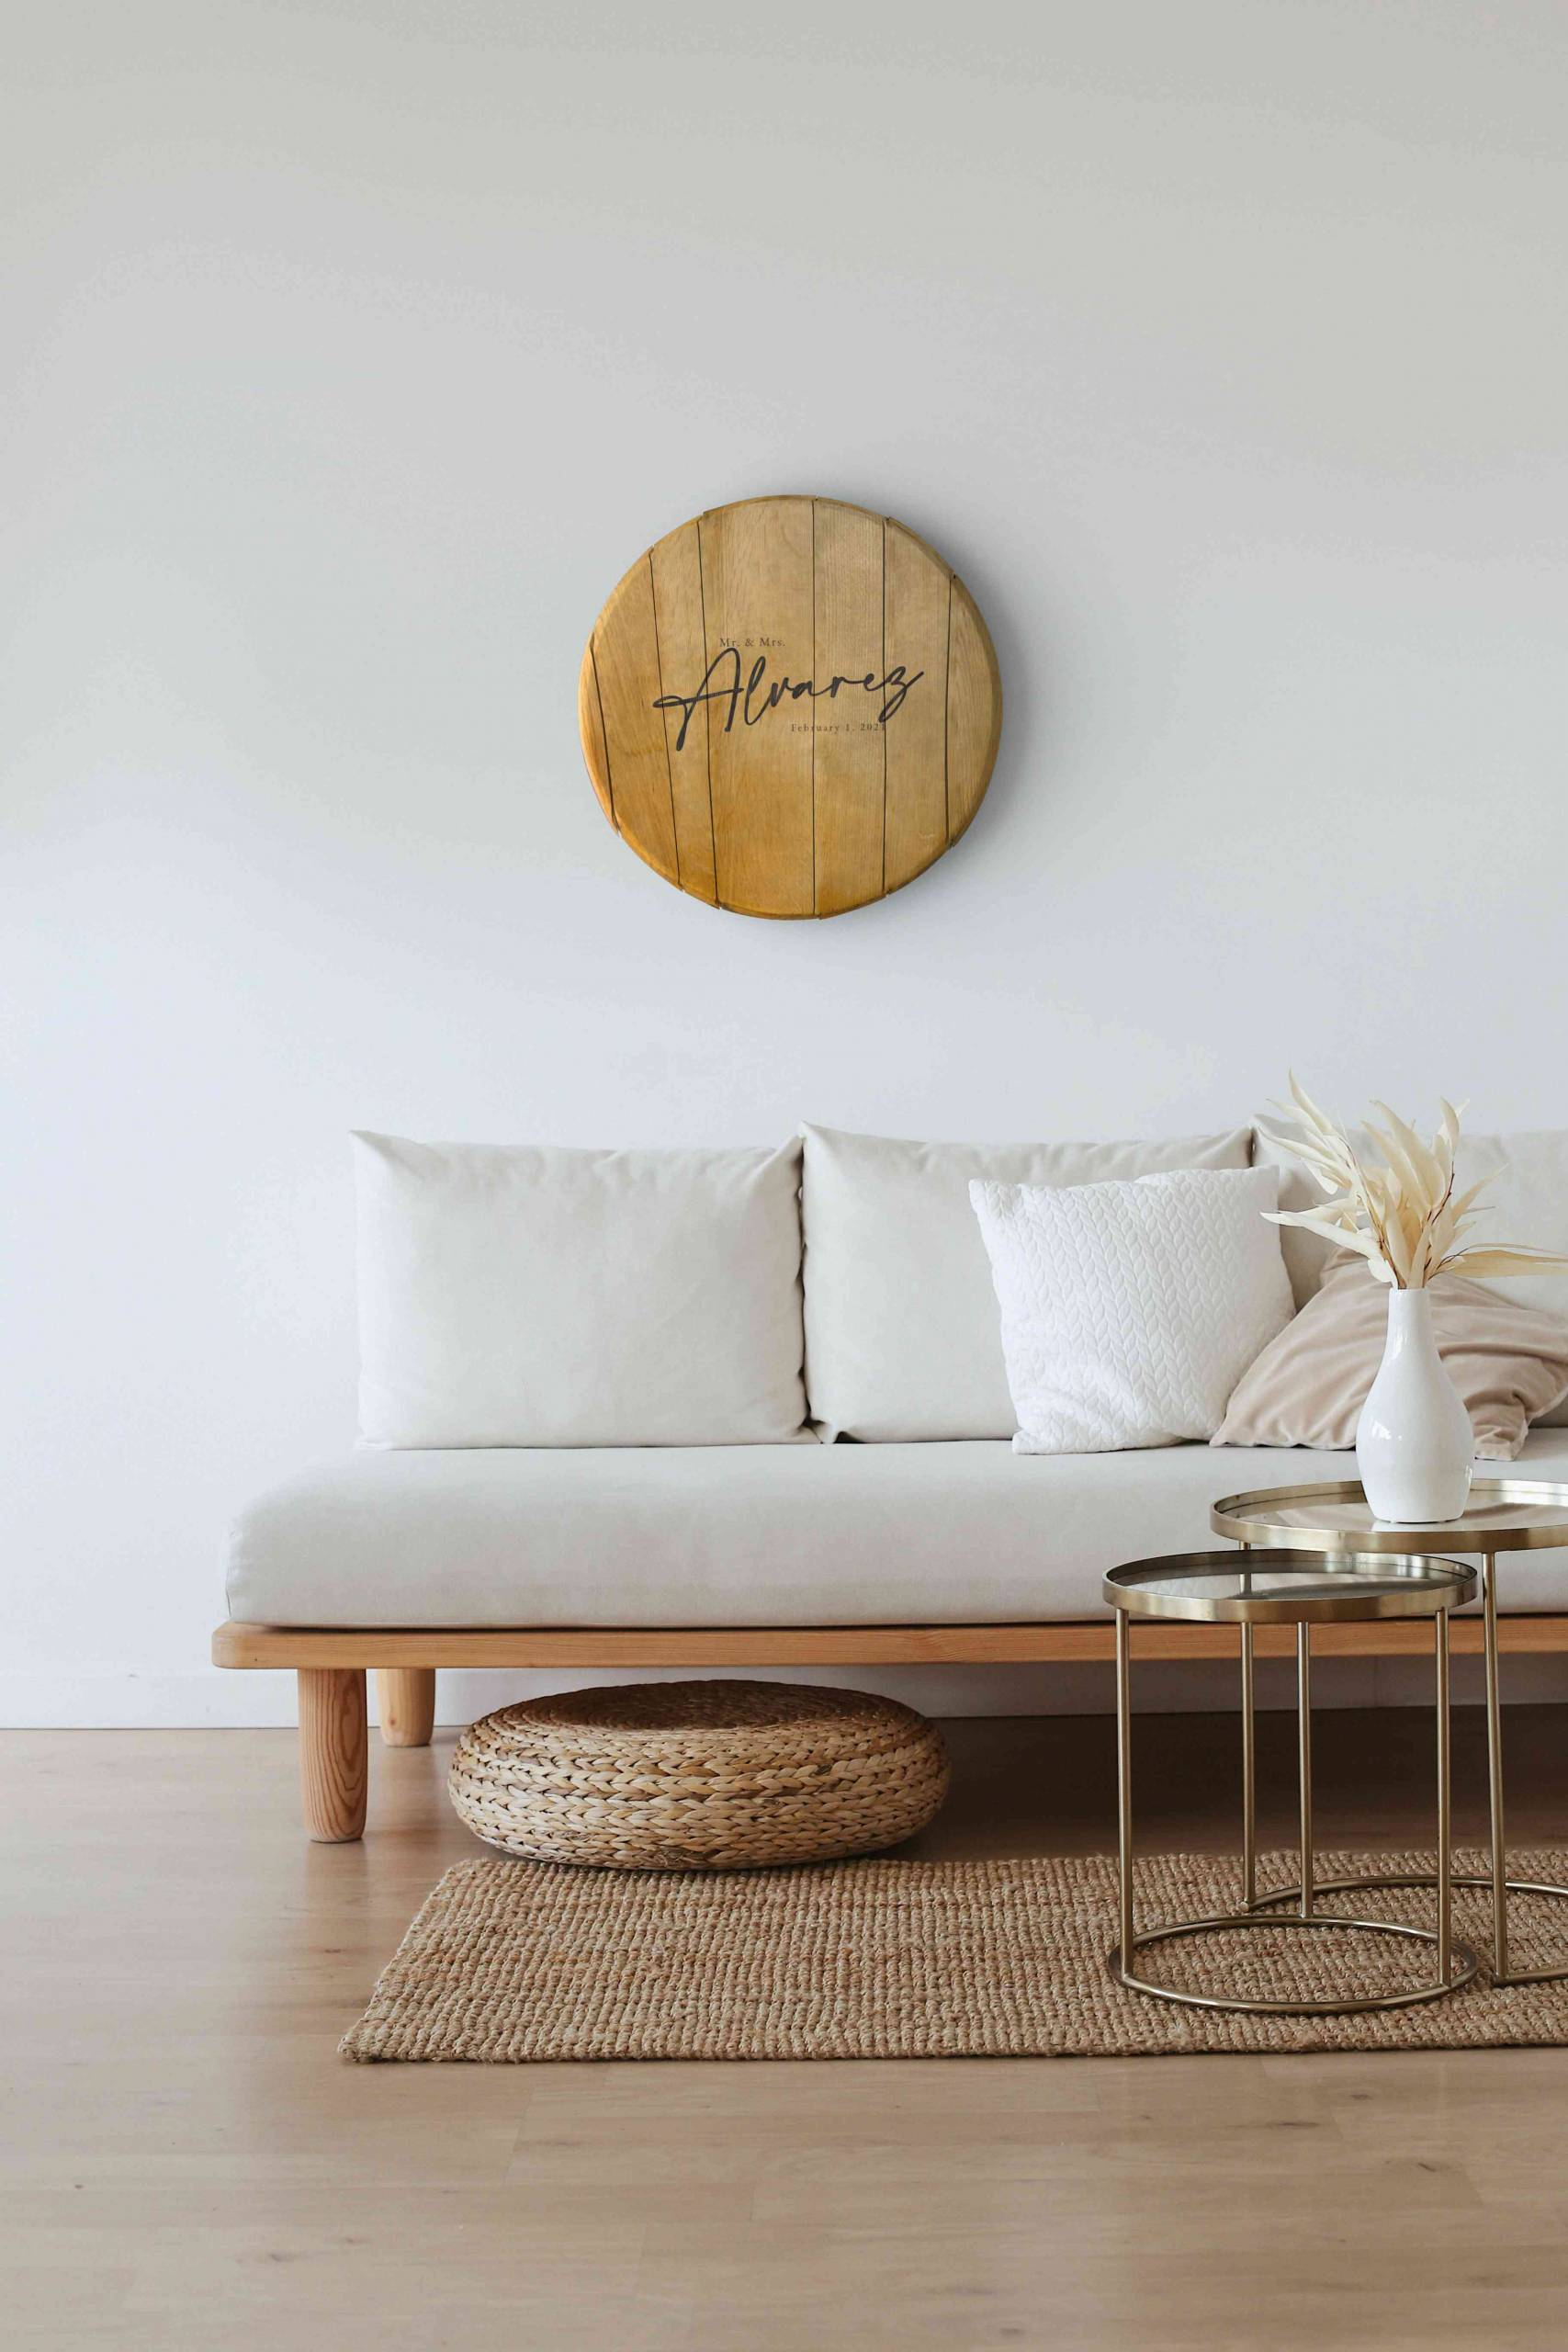 Whiskey Barrel Head Hanging in Living Room